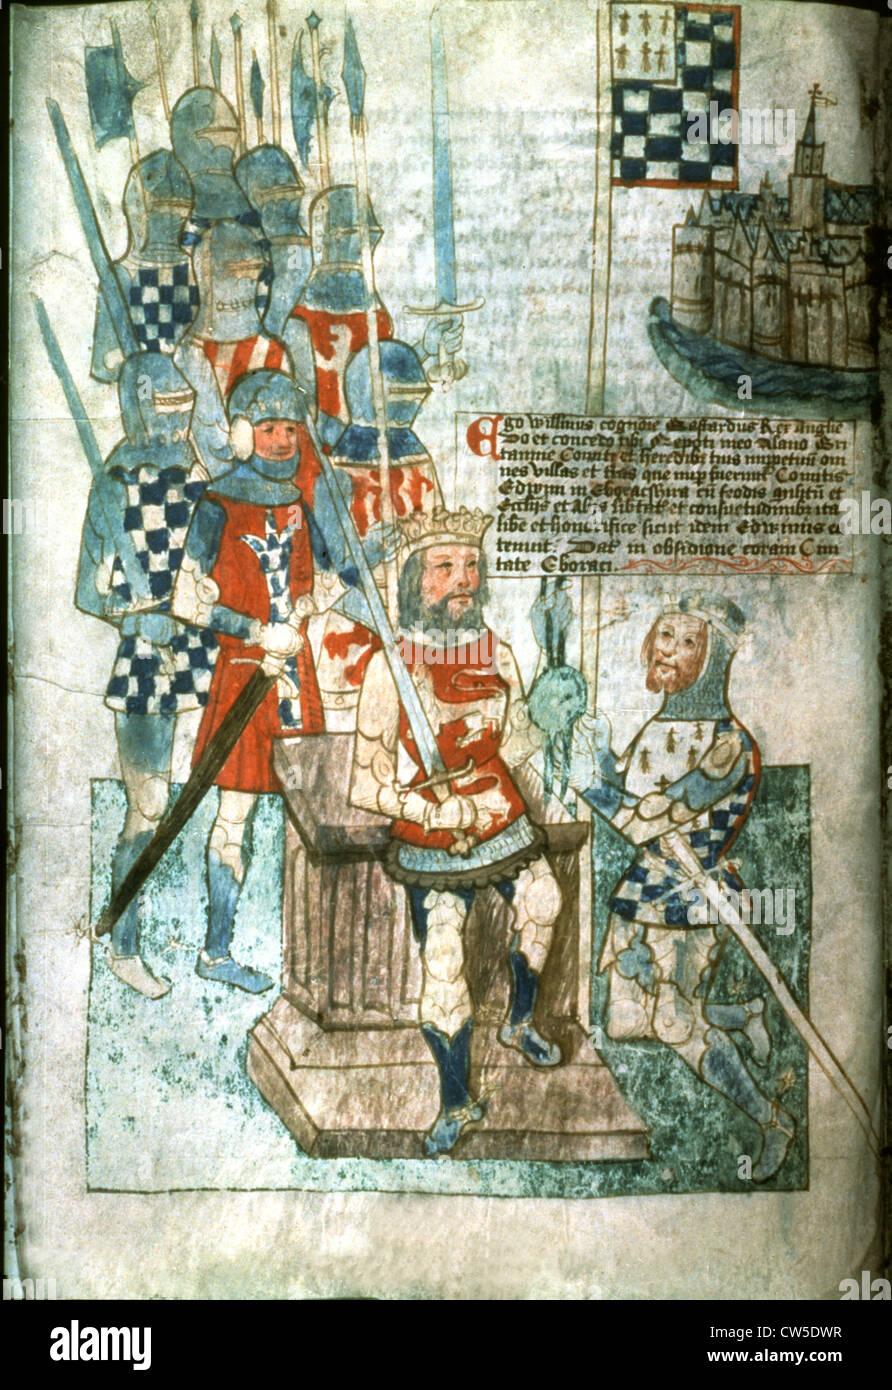 Miniature. William the Conqueror investing Earl Alain of Brittany - Stock Image